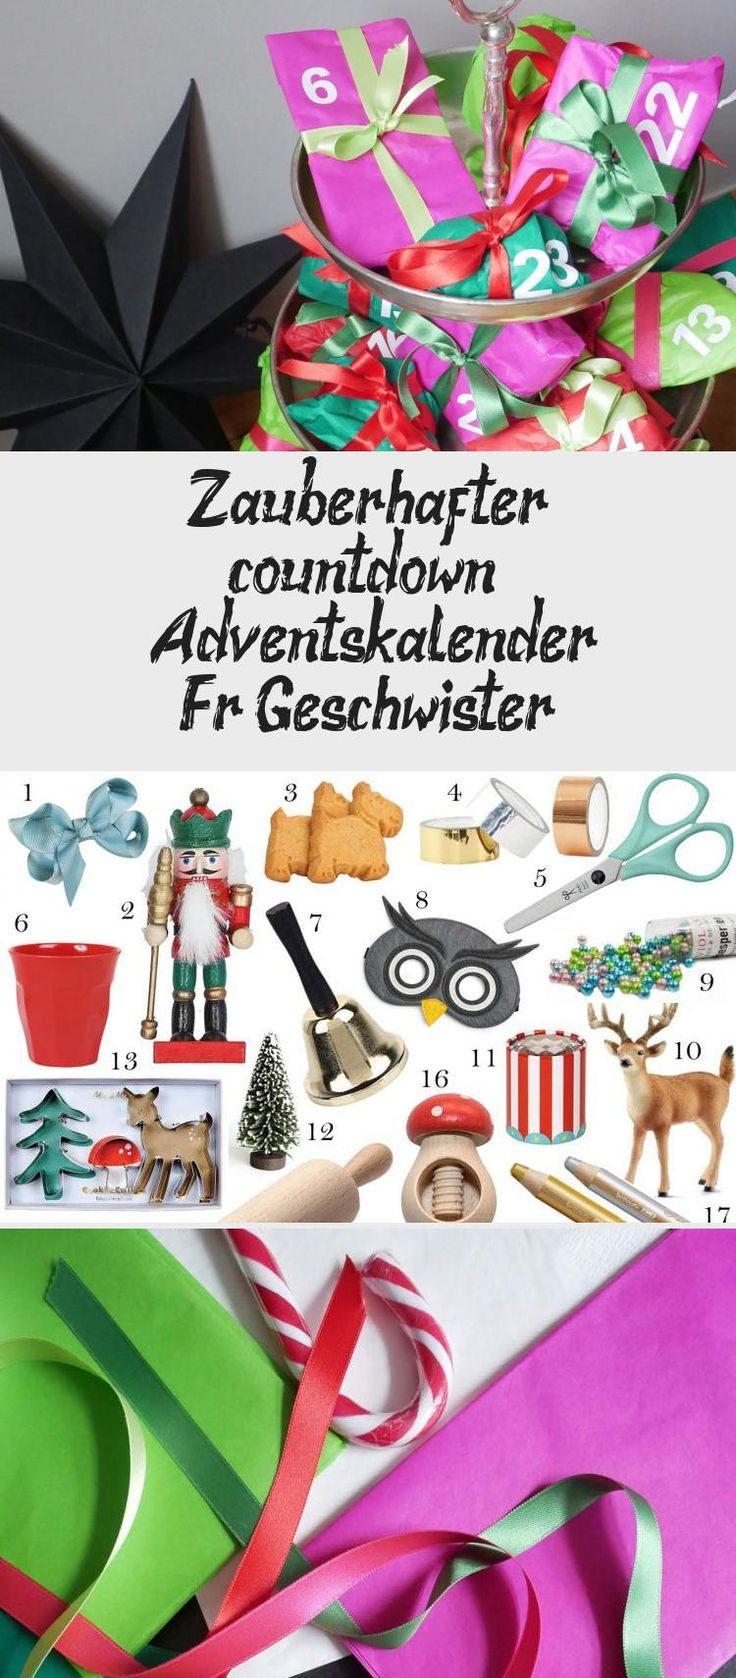 Was Ist Was Adventskalender